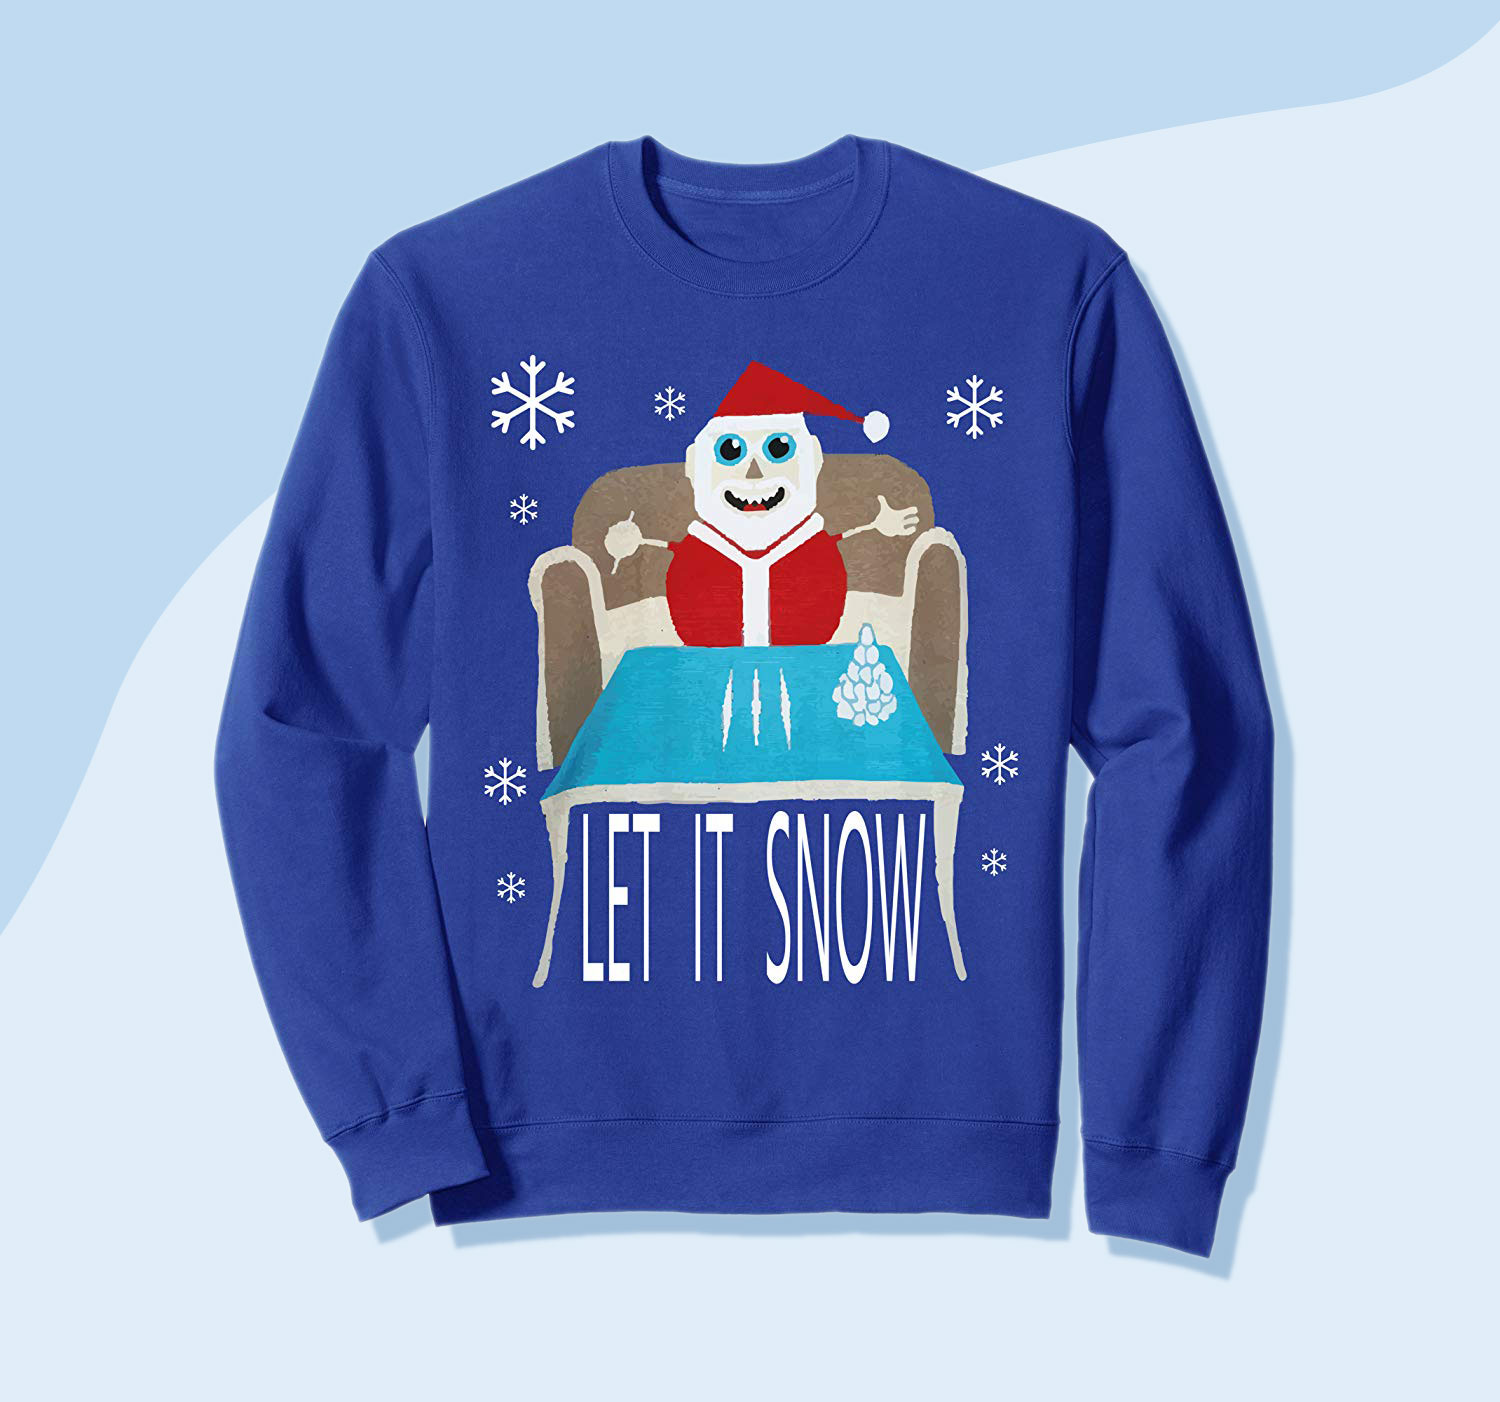 Walmart Pulled the Cocaine Santa Sweater, But Now It's a #1 Bestseller on Amazon